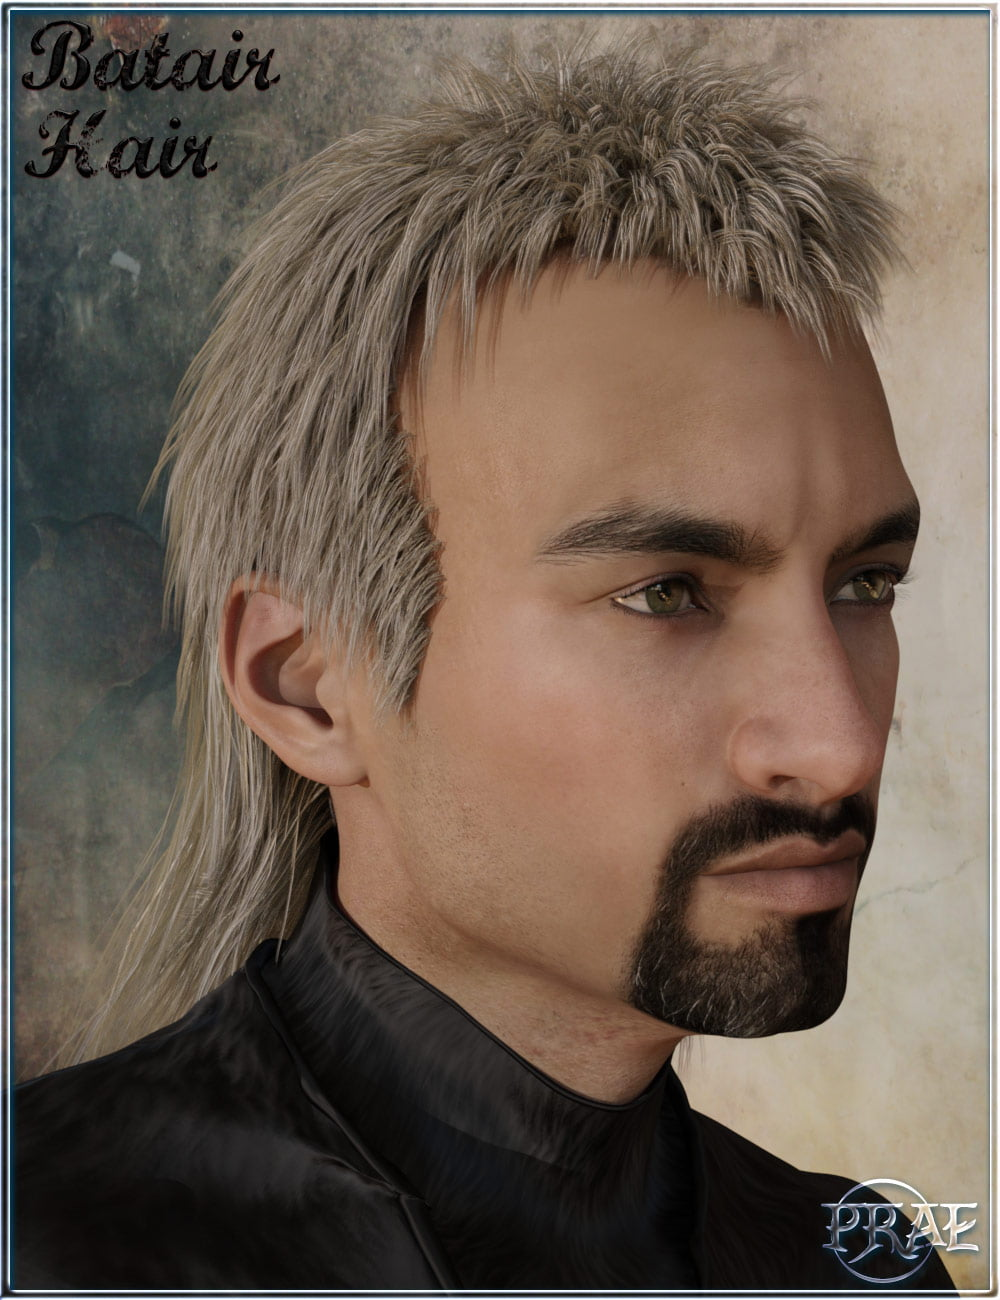 Prae-Batair Hair For Daz